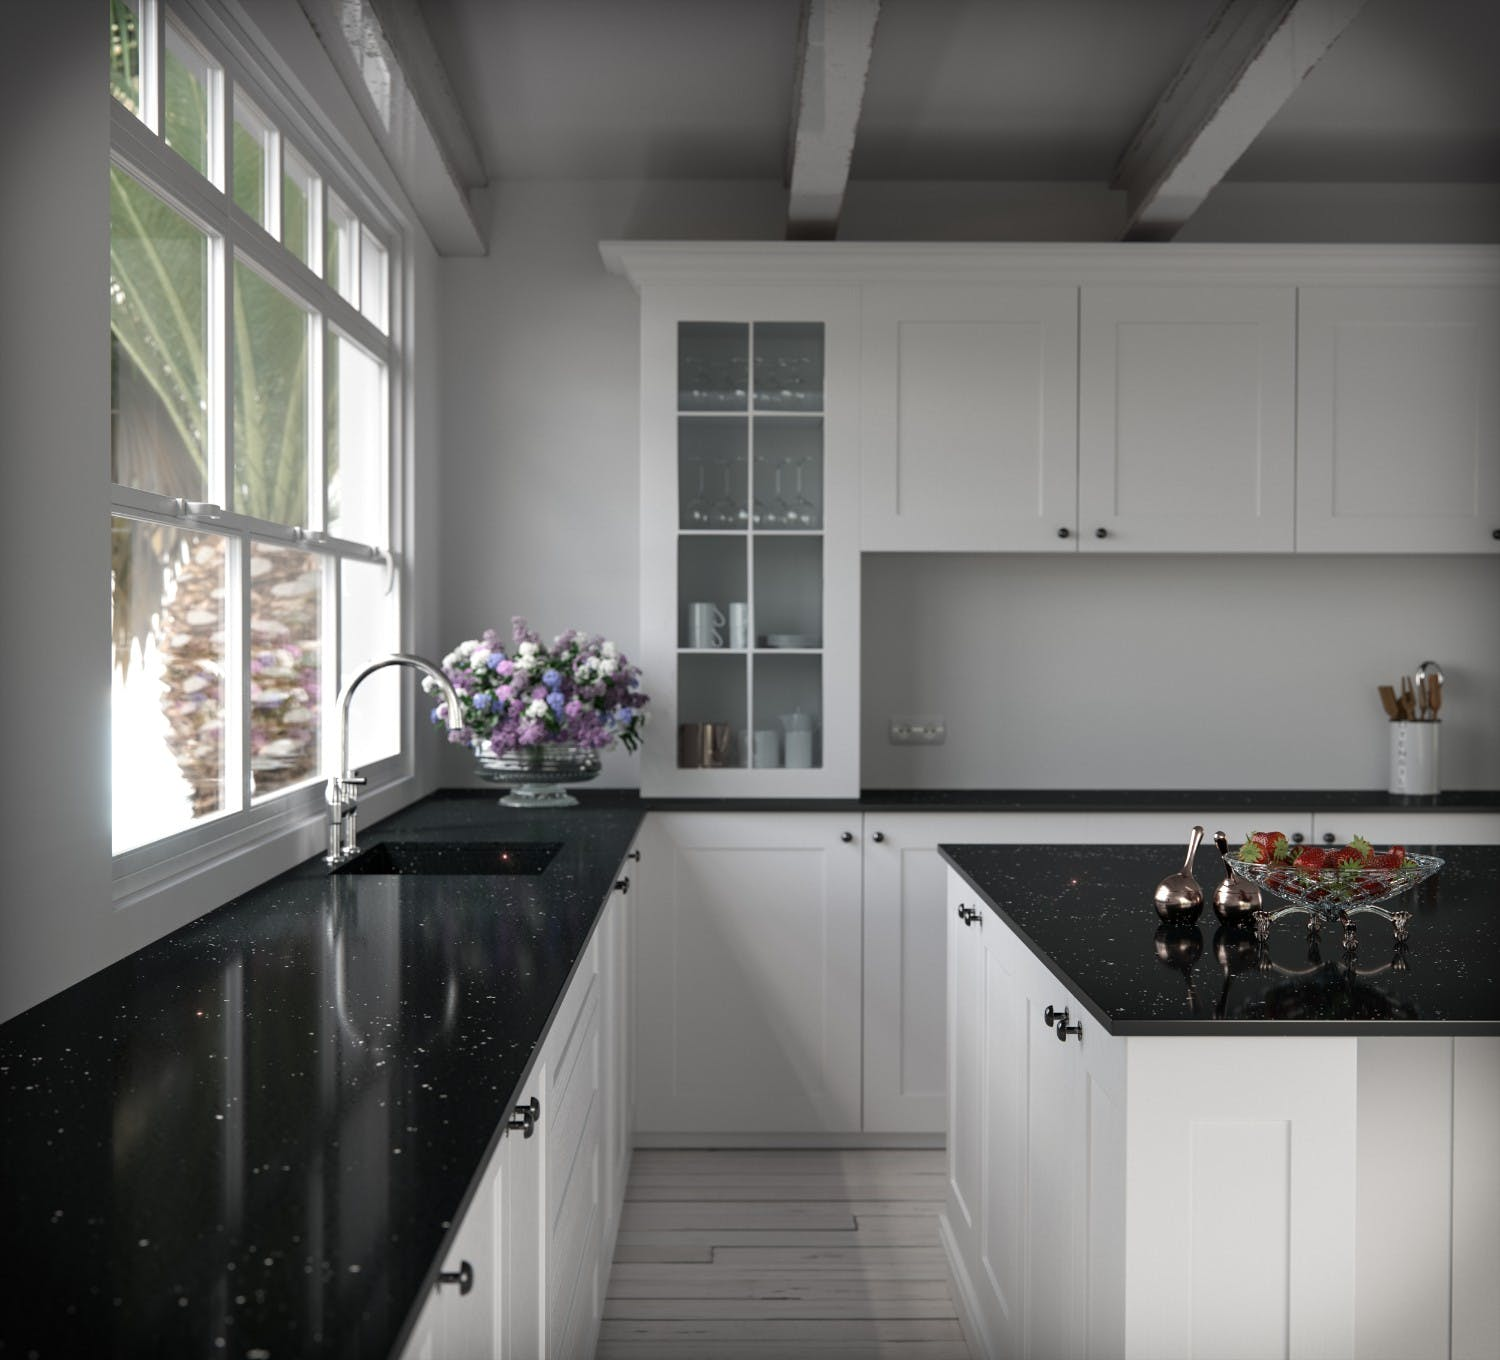 Cuisine Blanc Et Marron: Black And White Kitchens: A Winning Combination